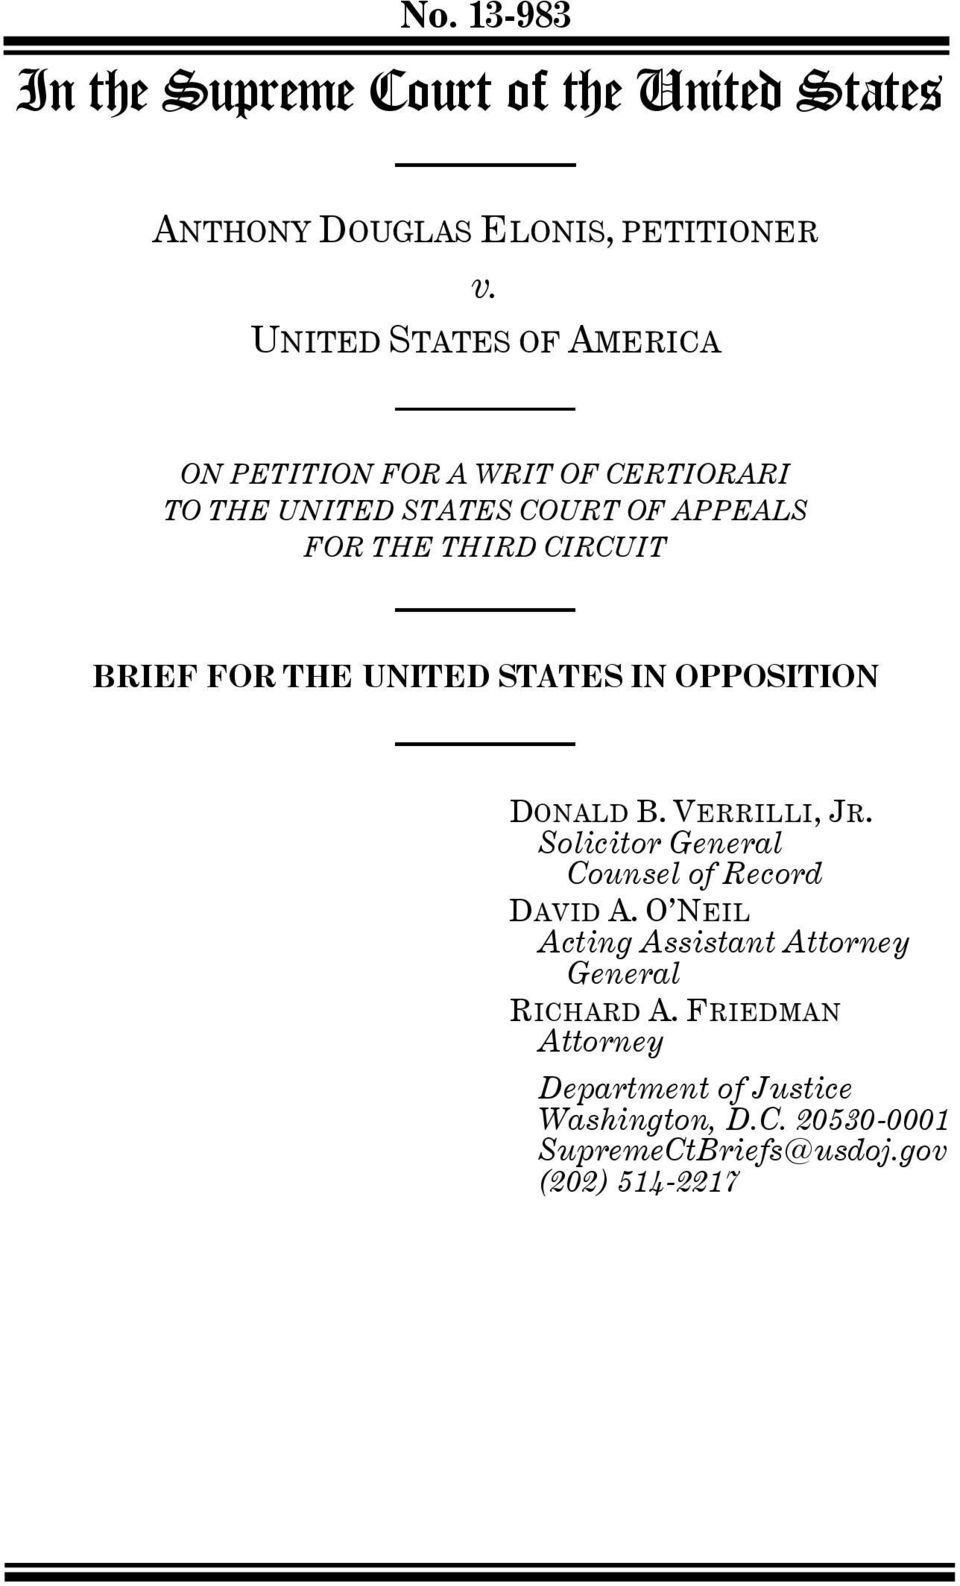 CIRCUIT BRIEF FOR THE UNITED STATES IN OPPOSITION DONALD B. VERRILLI, JR. Solicitor General Counsel of Record DAVID A.